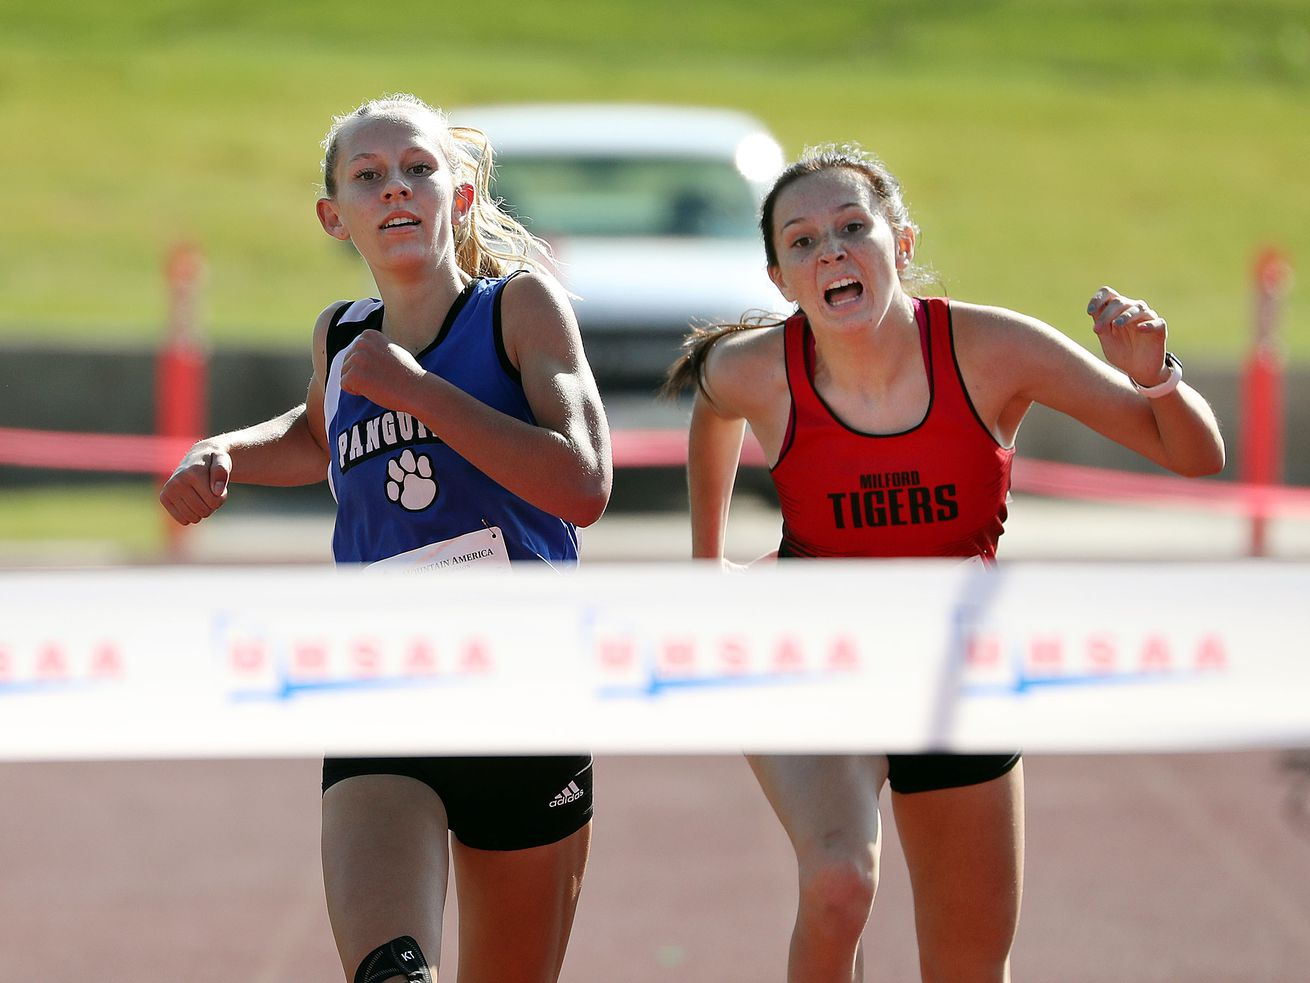 High school cross-country: Adelaide Englestead's dramatic finish helps Panguitch girls claim 1A title, boys title goes to Piute